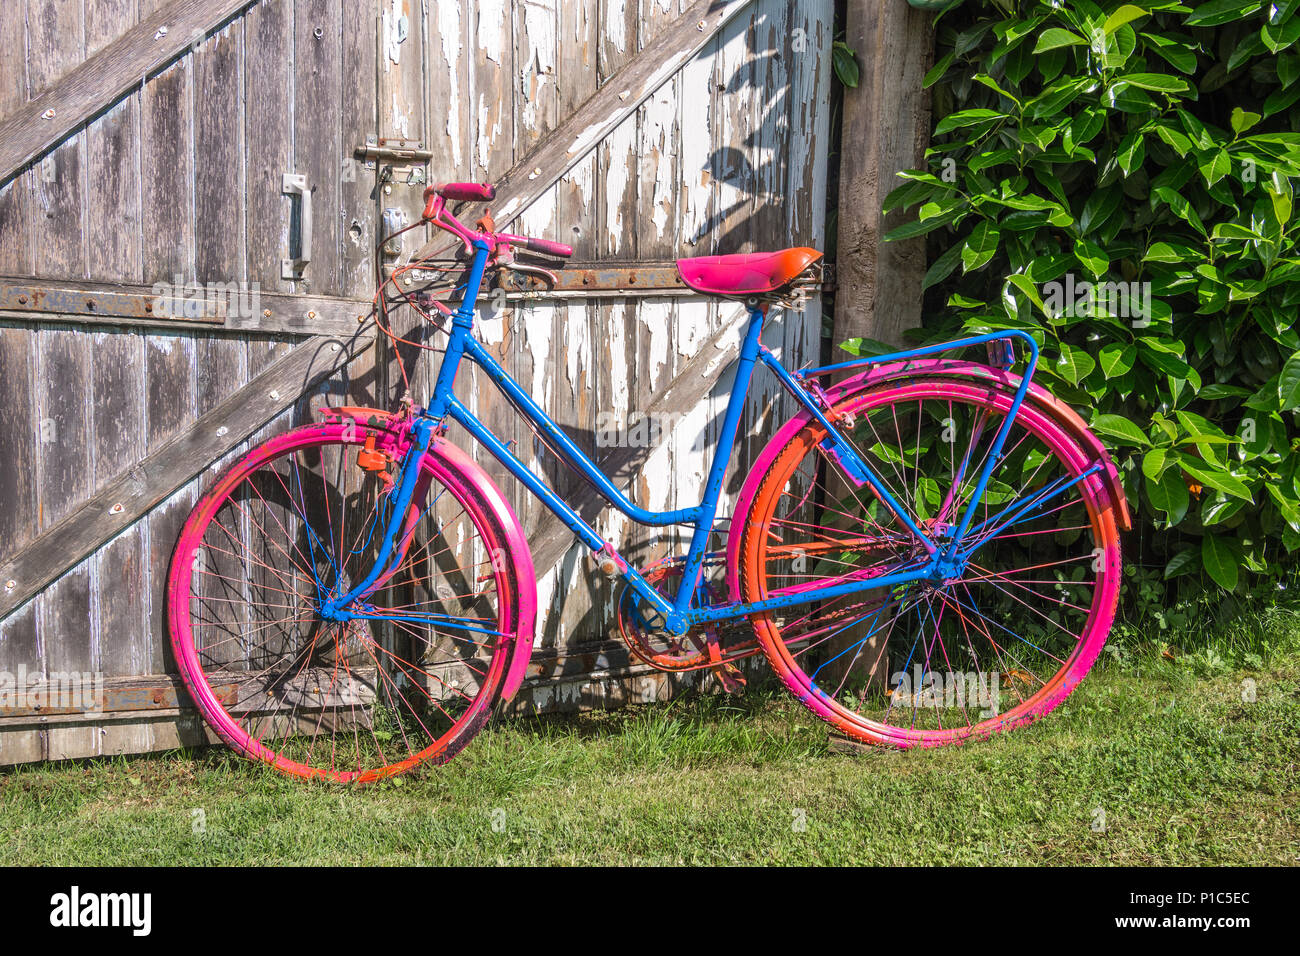 Gaily painted ladies bicycle in French garden. - Stock Image